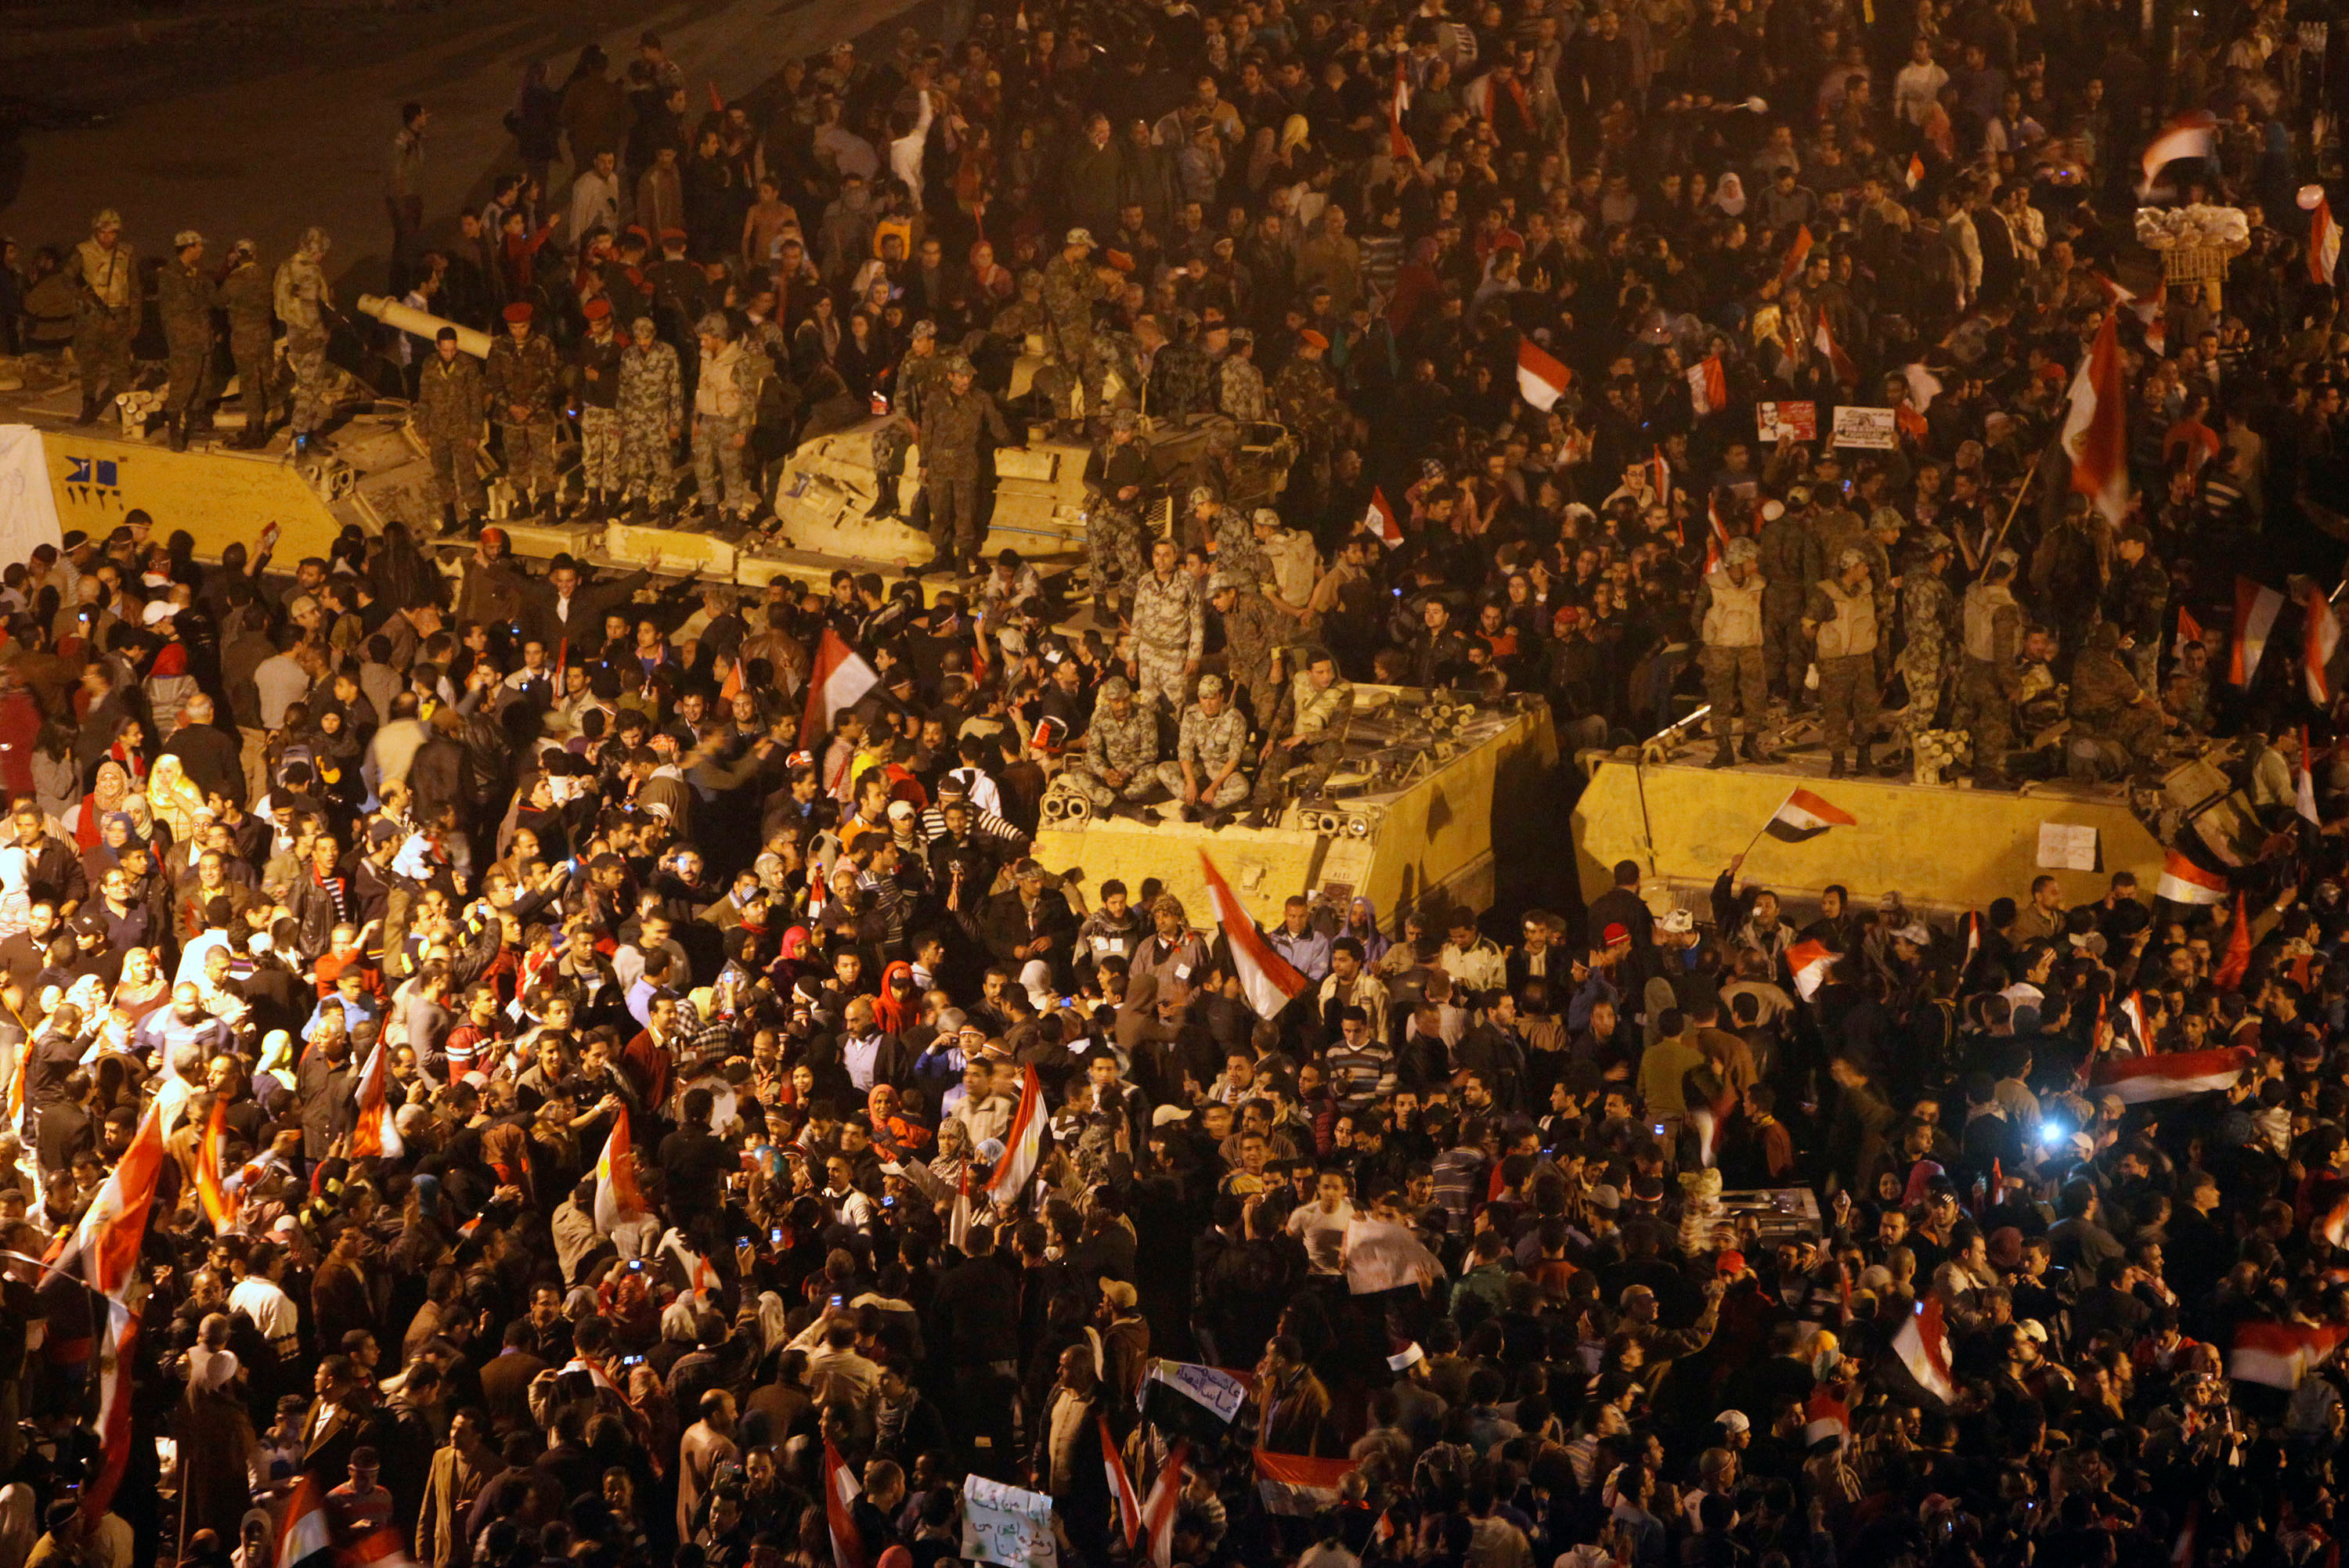 FILE PHOTO: Anti-government protesters celebrate next to soldiers inside Tahrir Square after the announcement of Egyptian President Hosni Mubarak's resignation in Cairo February 11, 2011. REUTERS/Asmaa Waguih/File Photo